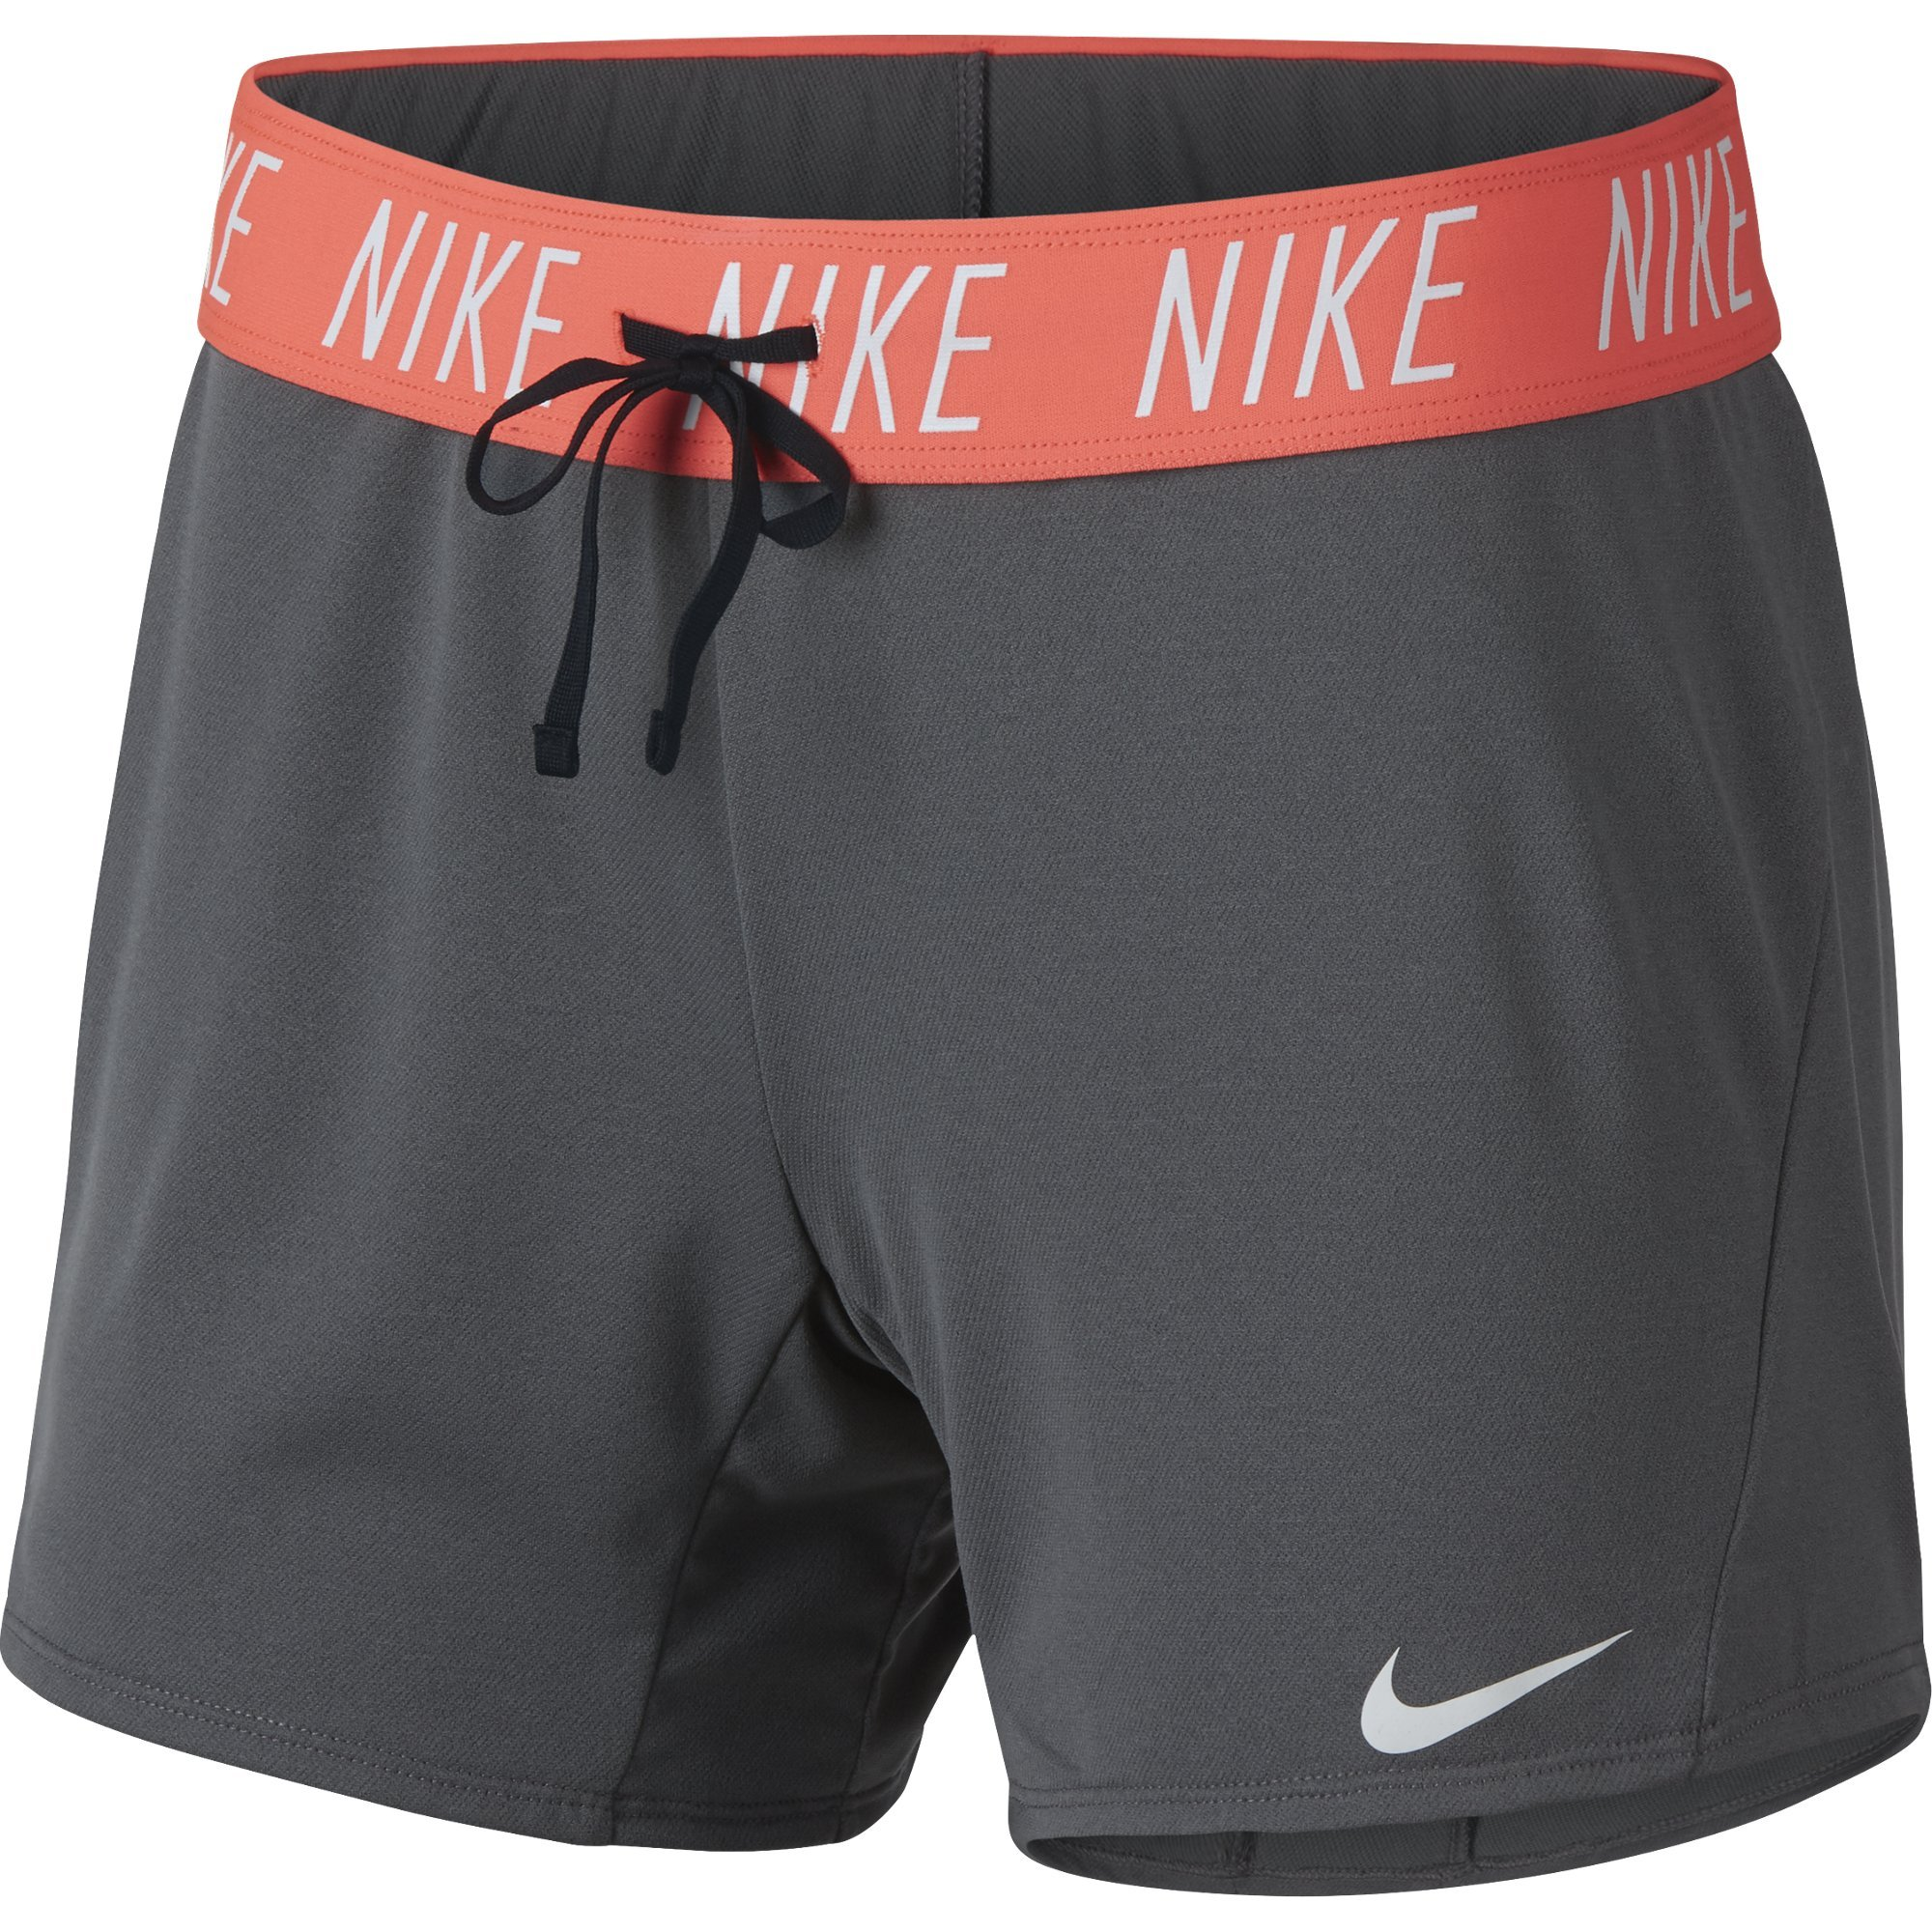 NIKE Women's Dry Short Attack Trainer 5, Dark Grey/White, XX-Large by Nike